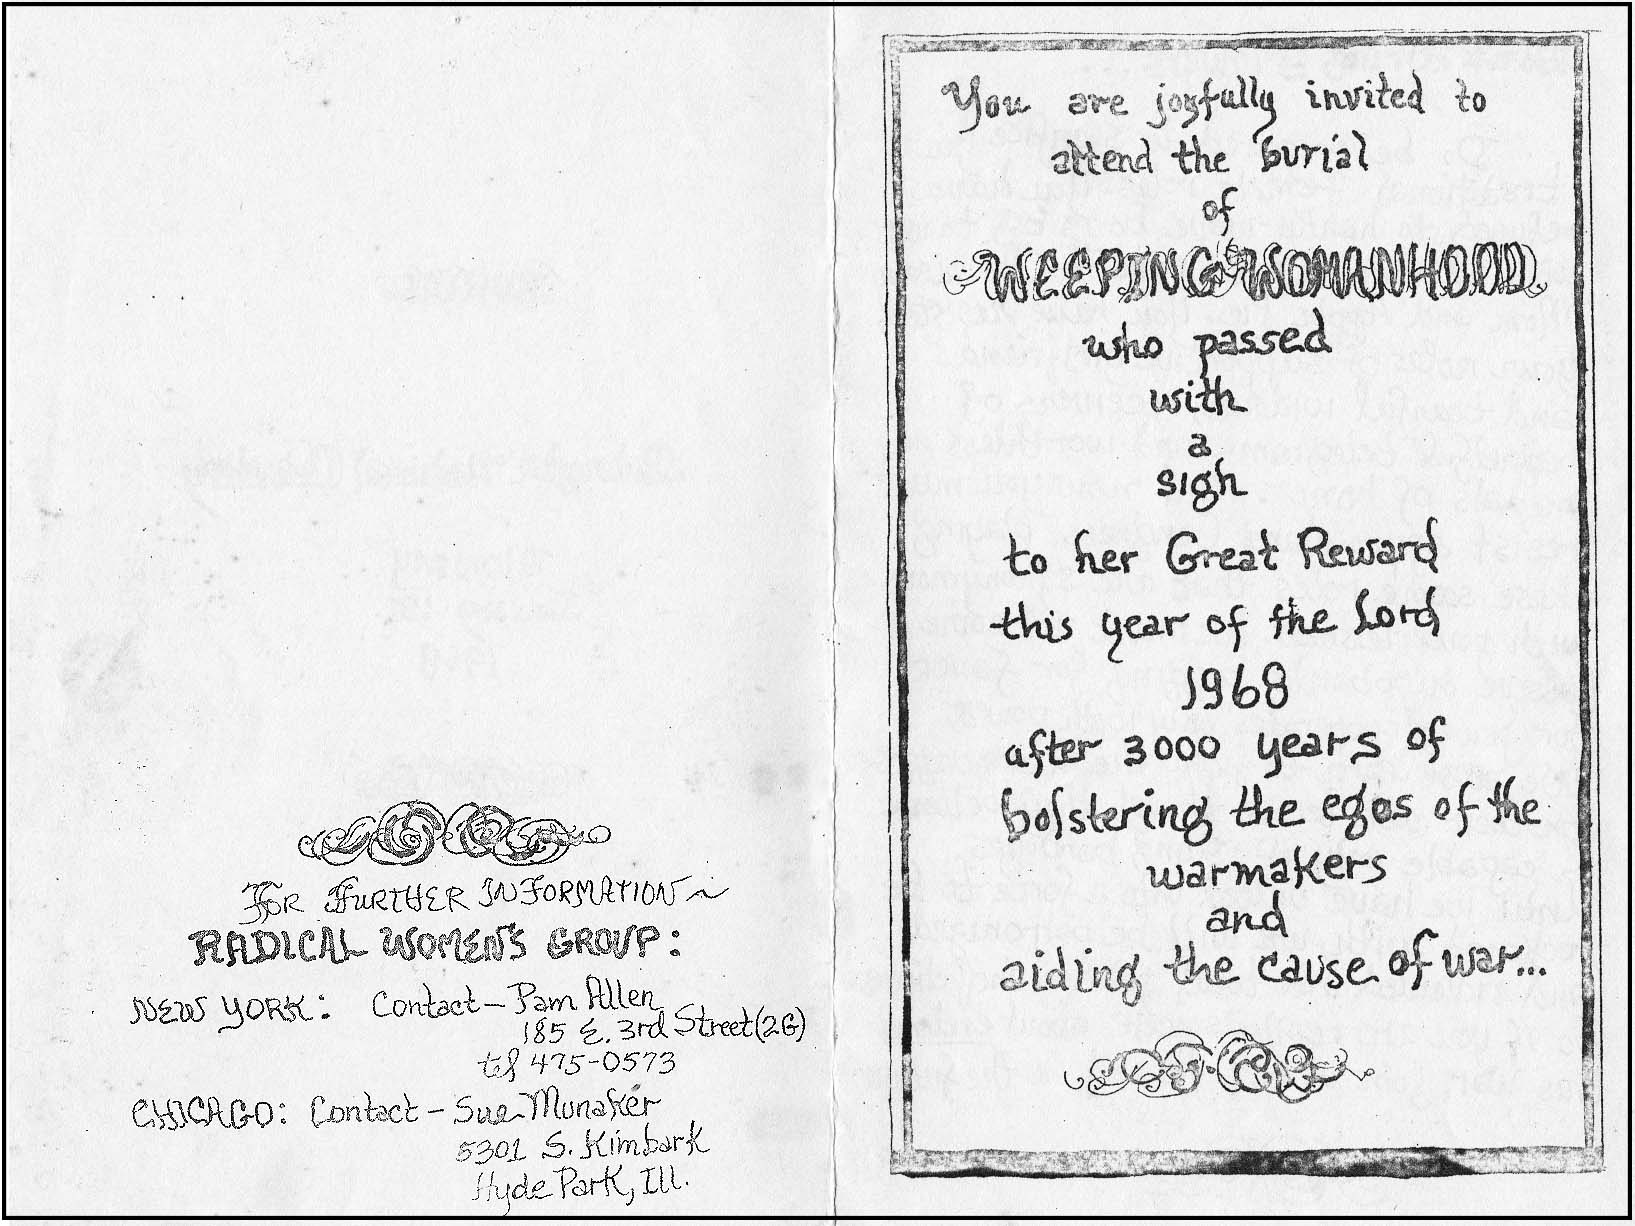 The burial of traditional womanhood january 15 1968 meeting addresses for fledgling feminist groups in both new york and chicago appeared on the invitation firestone had been influential in stopboris Images